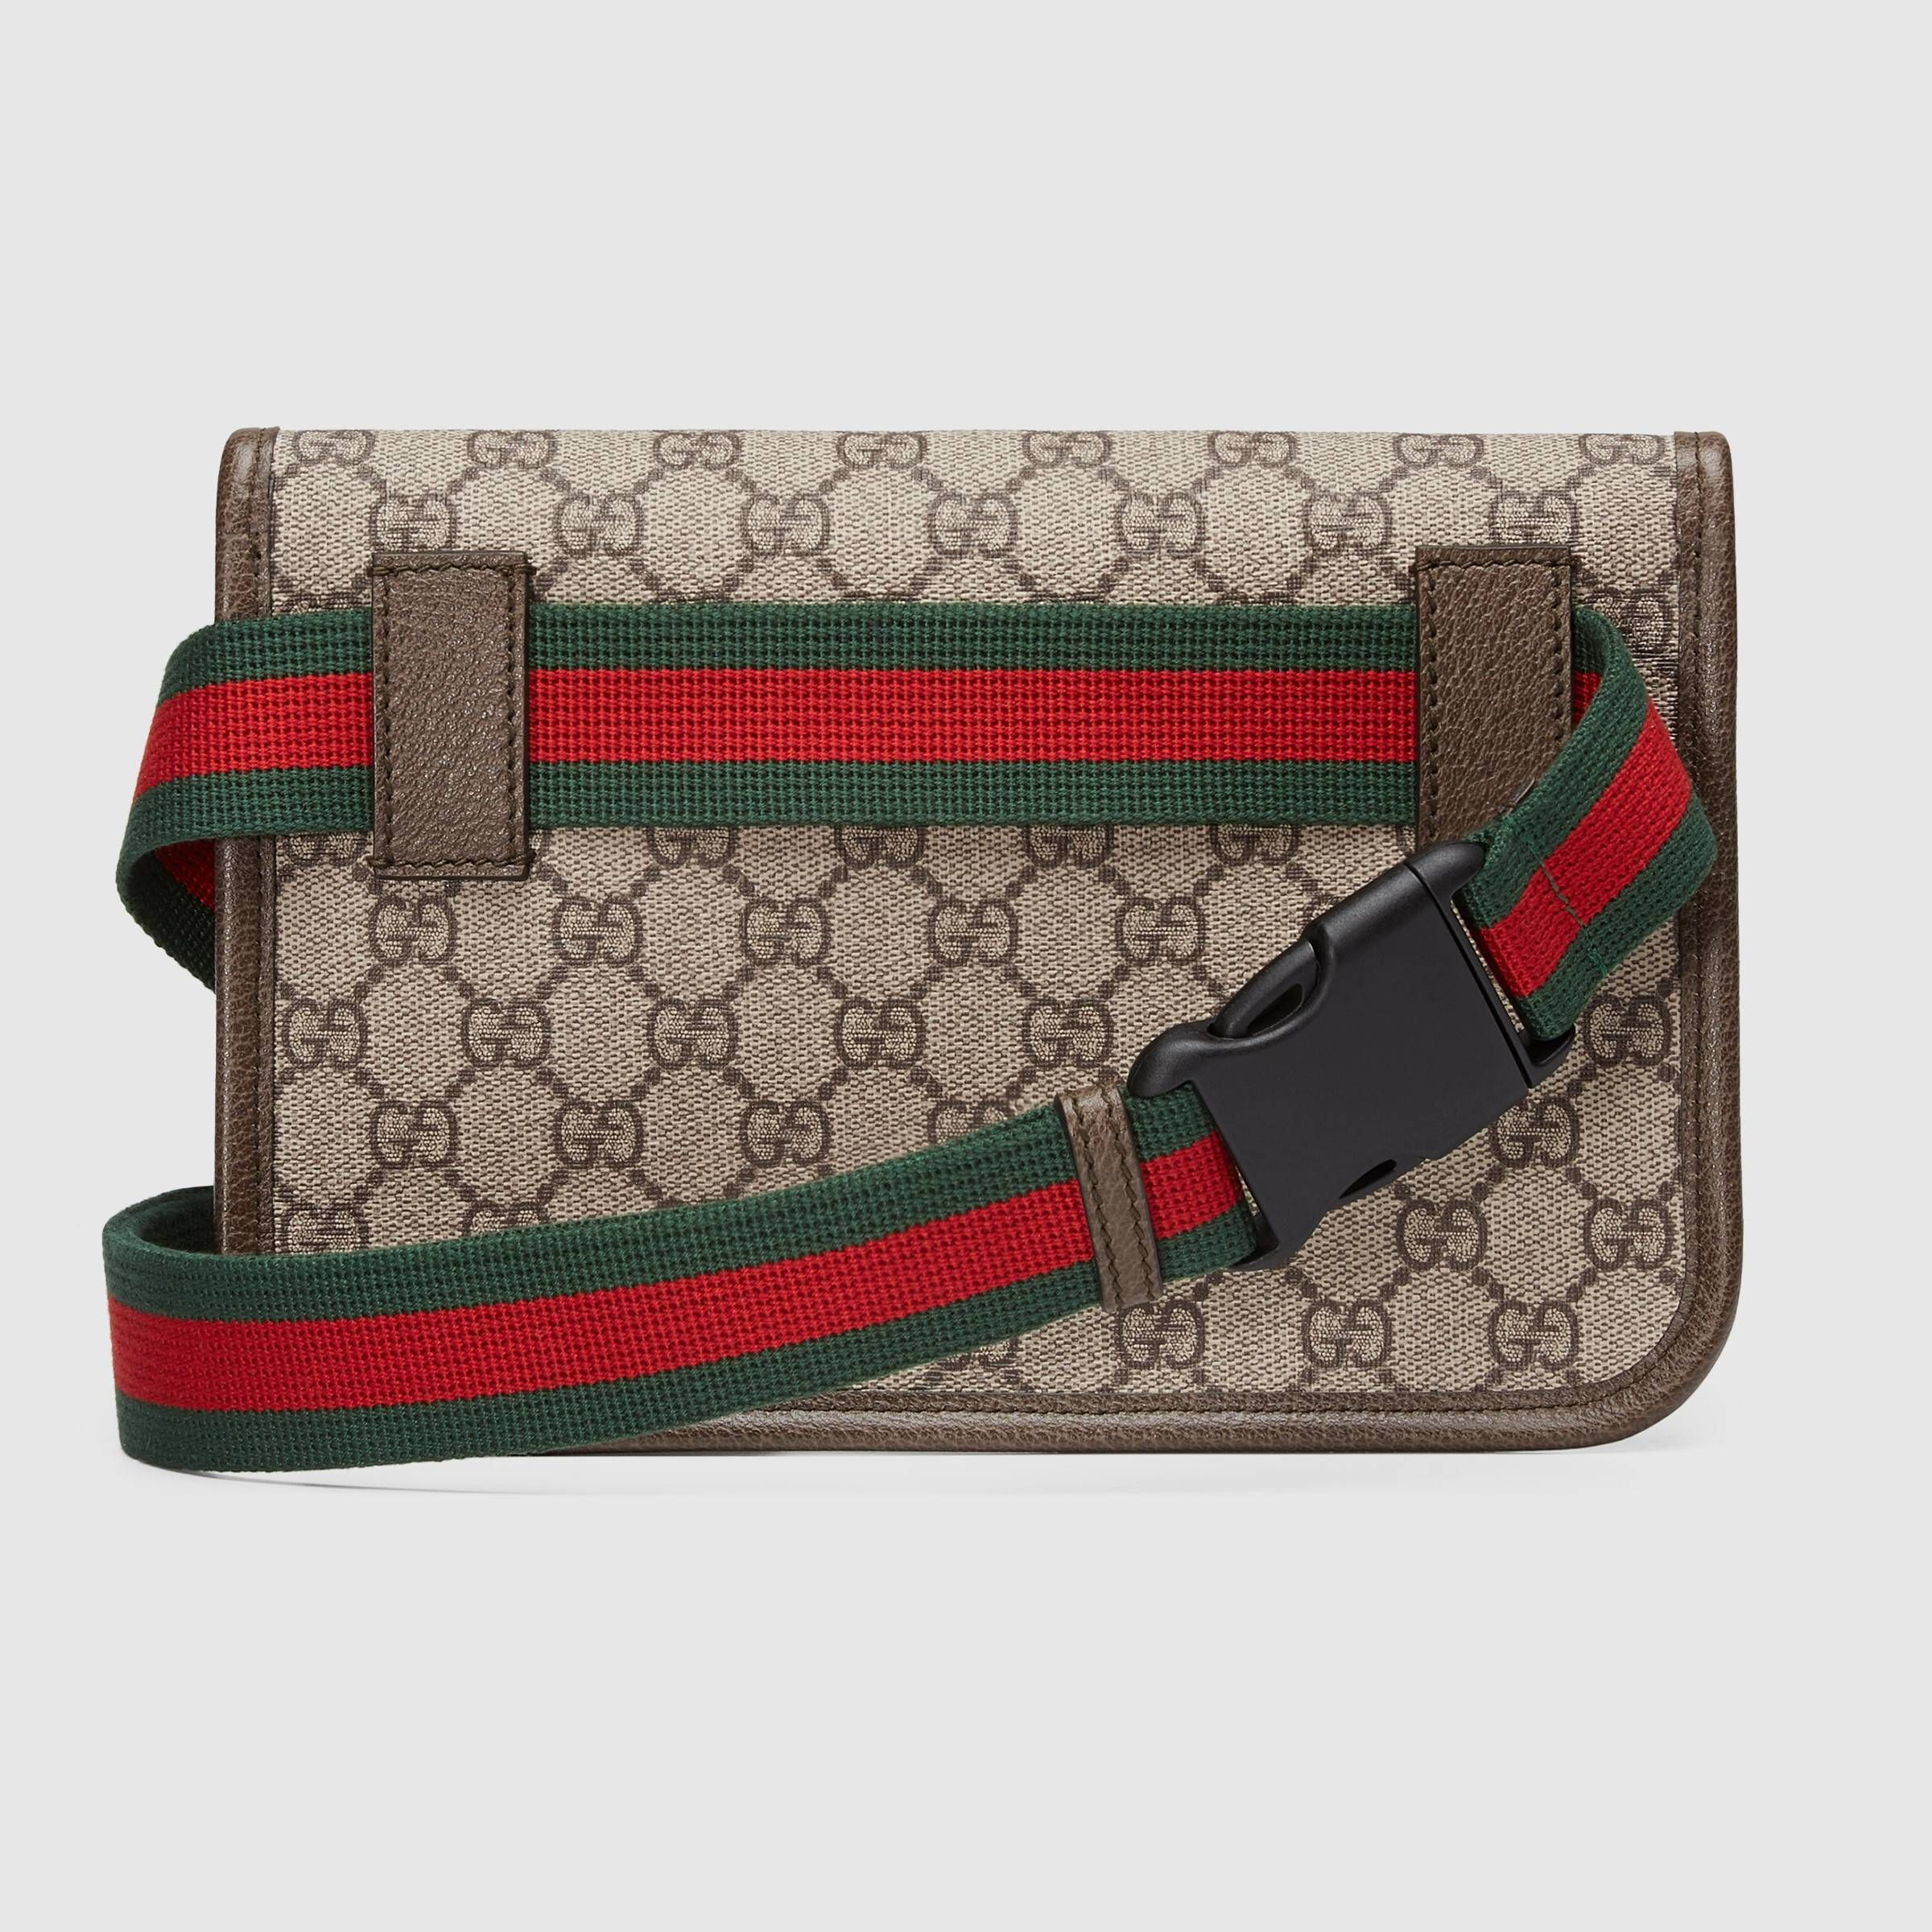 f7c0439c86f85a GG Supreme belt bag in Beige/ebony GG Supreme canvas, a material with low  environmental impact, with brown leather trims | Gucci Women's Luggage &  Lifestyle ...